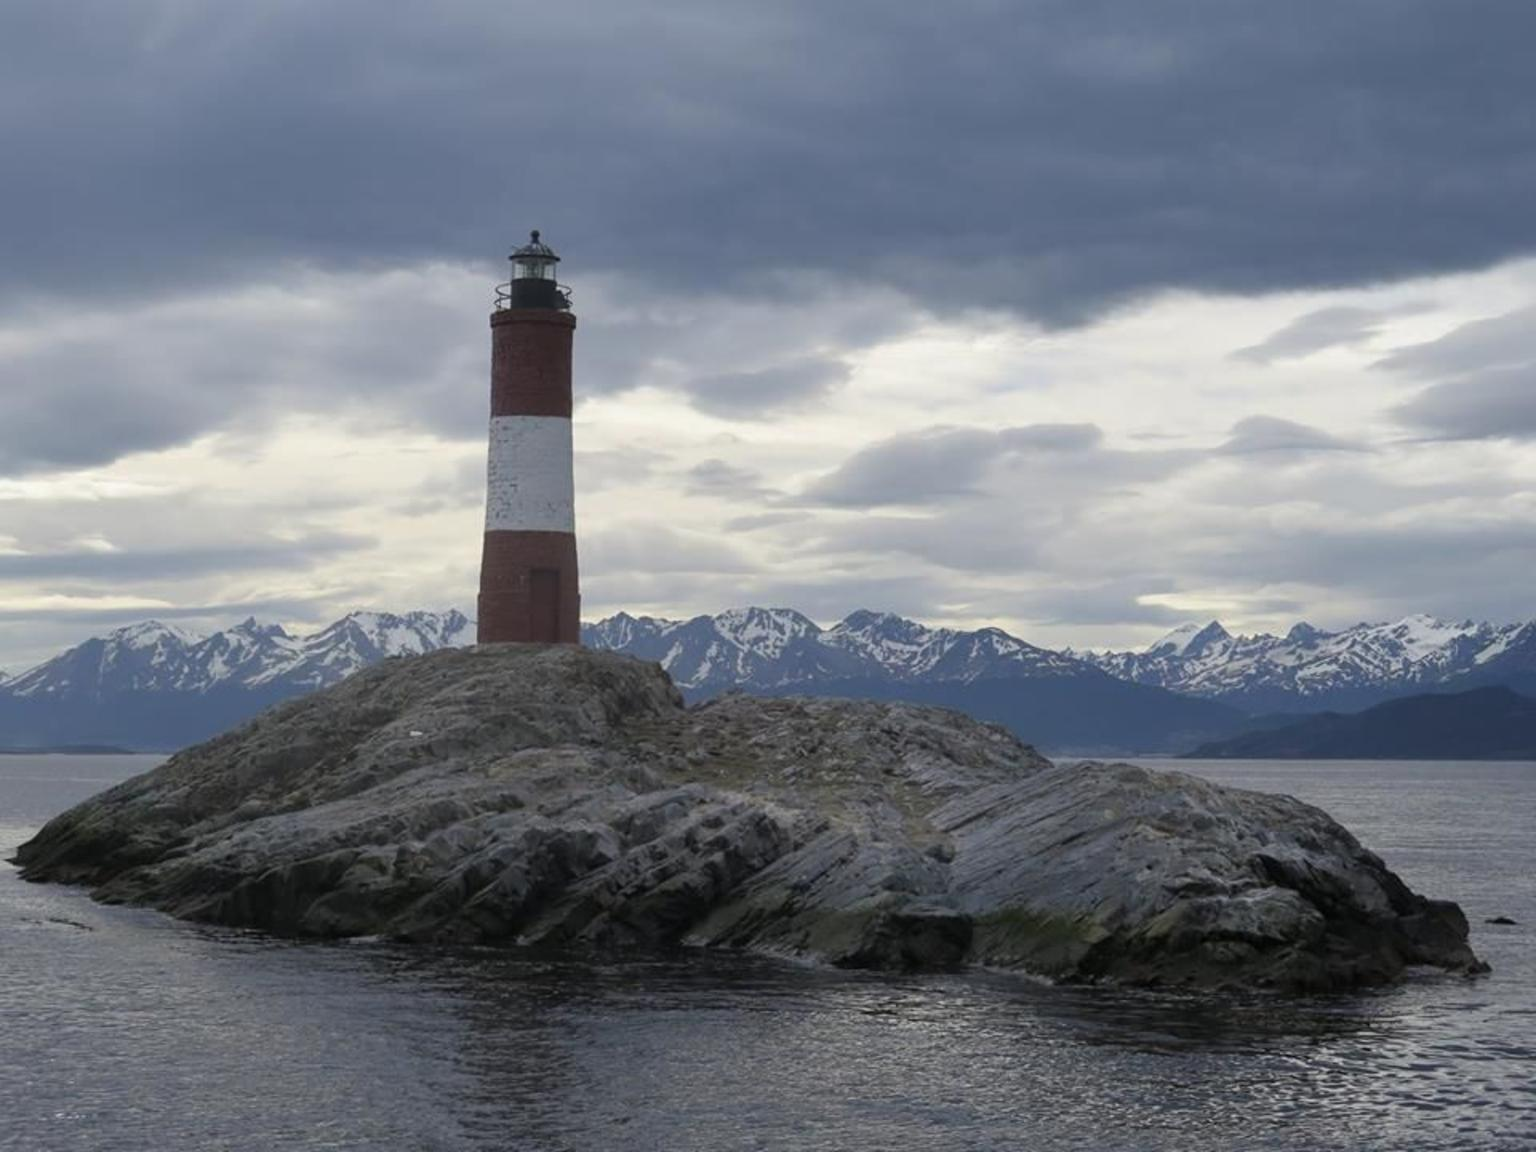 Tierra del Fuego and Beagle Channel Combo Tour by Train and Boat